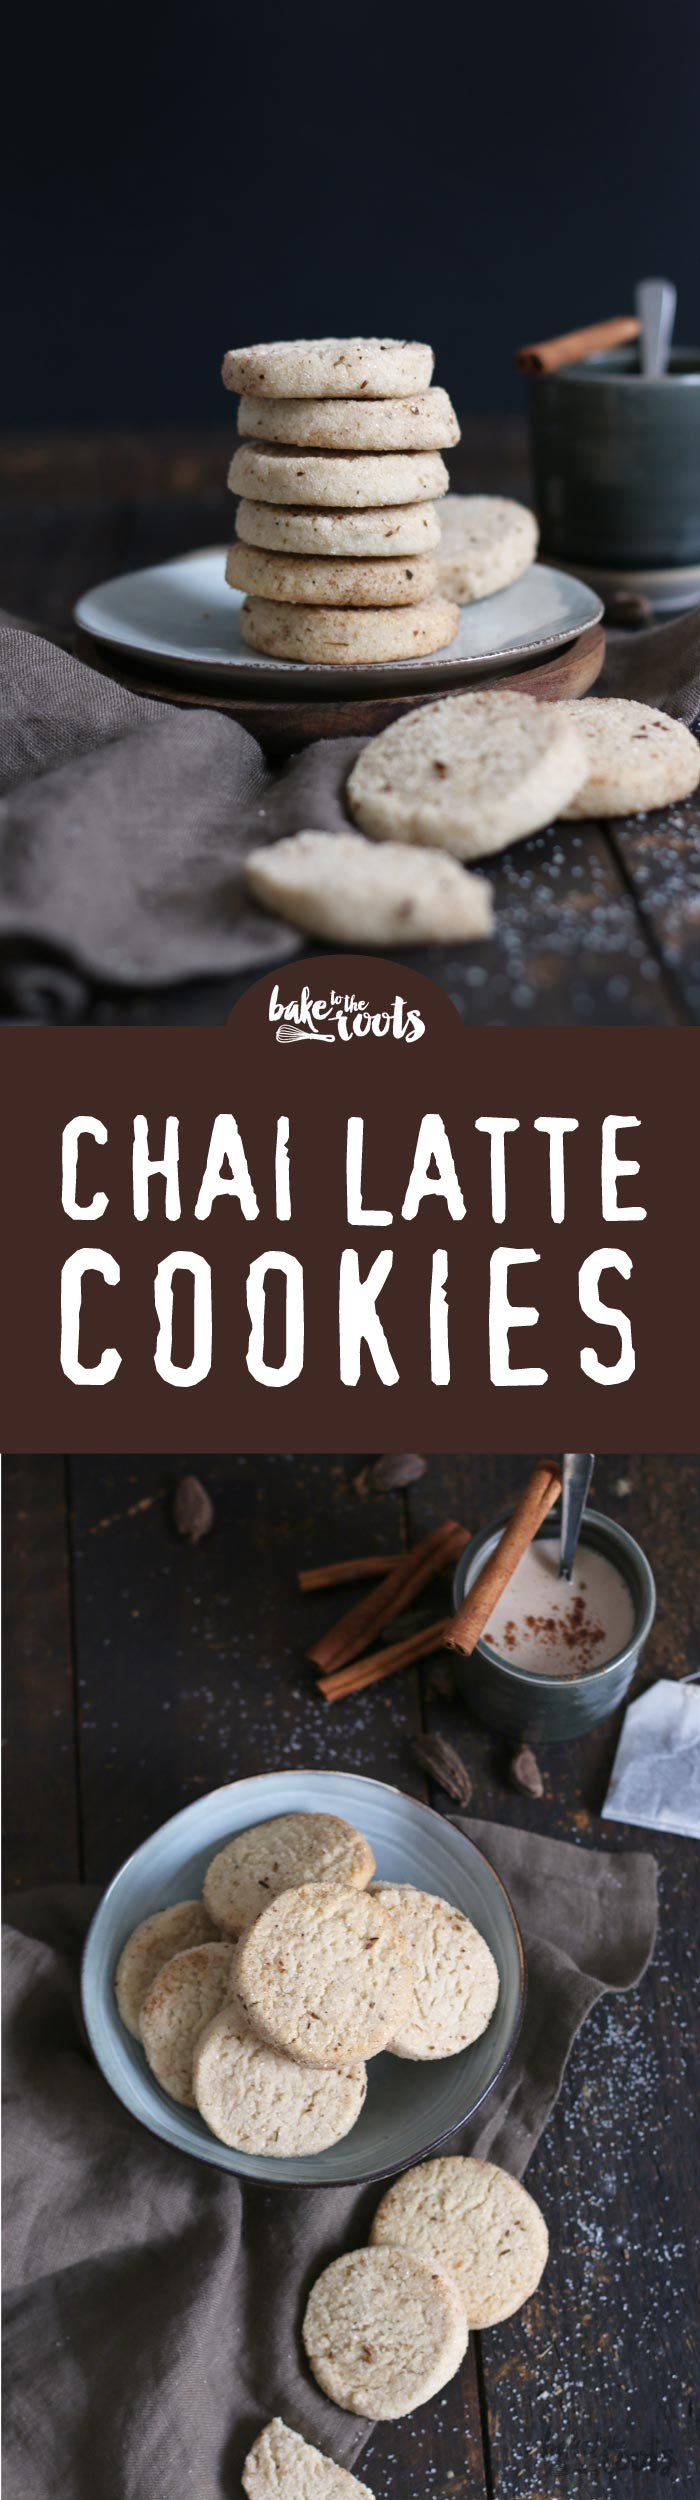 Delicious Chai Latte Cookies | Bake to the roots